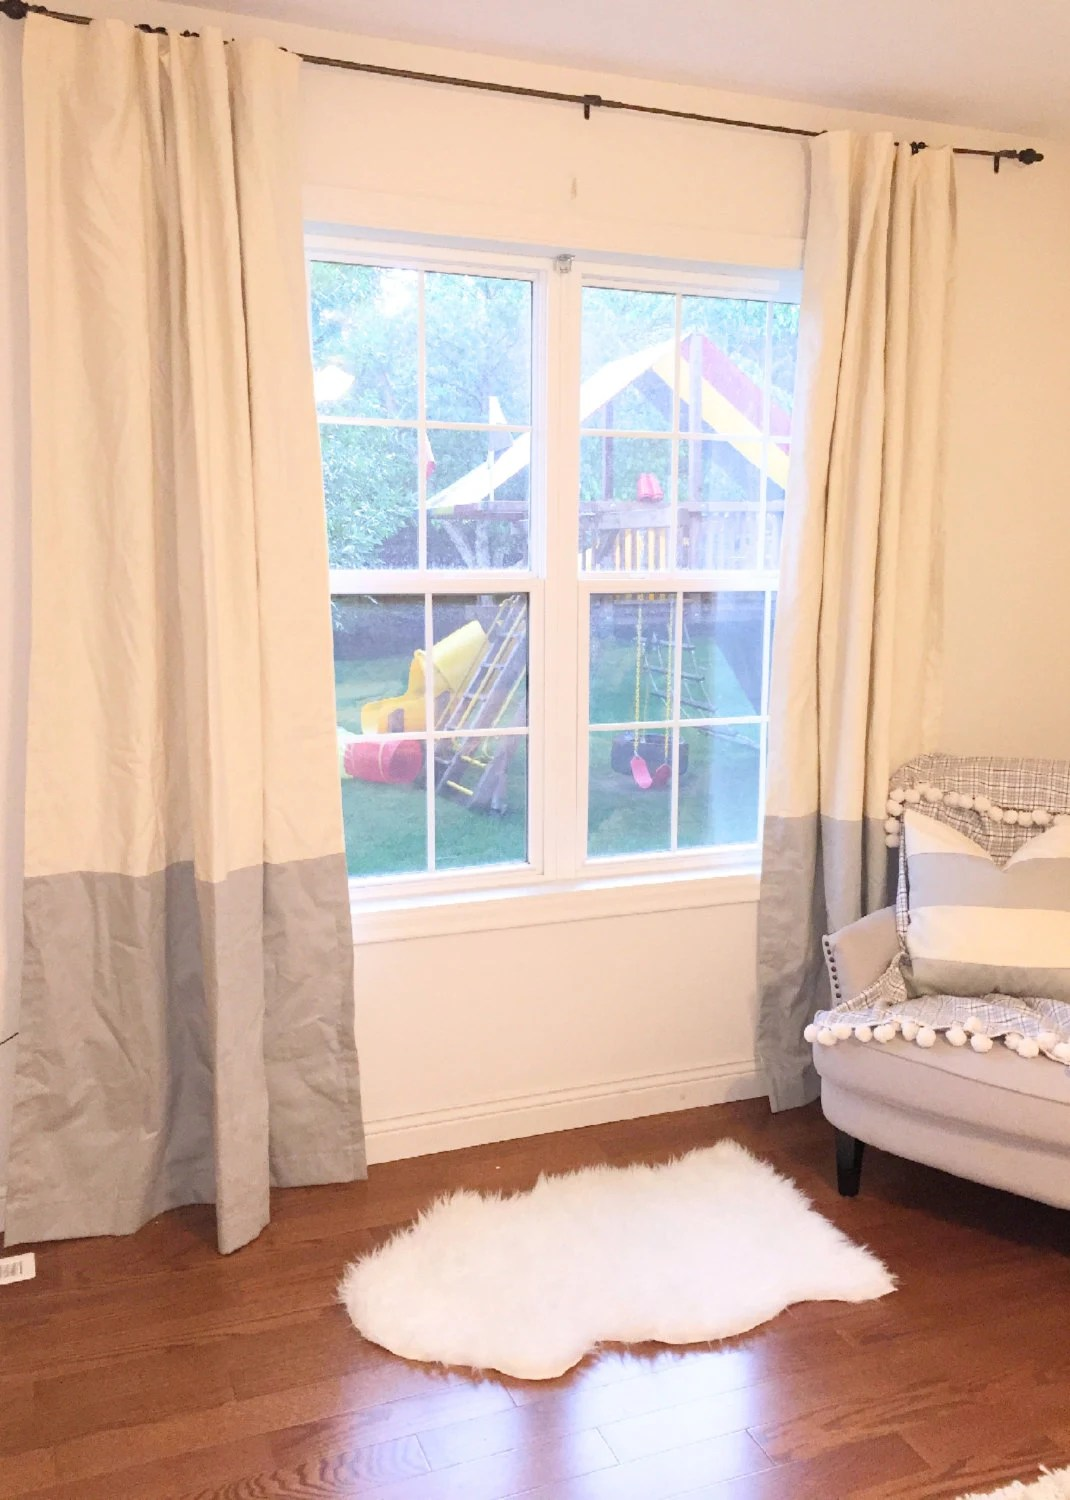 How To Make Curtain Lights Custom Ivory And Taupe Light Gray Striped Curtains Stripes Color Blocked Nursery Curtains Window Treatments Farmhouse Vintage